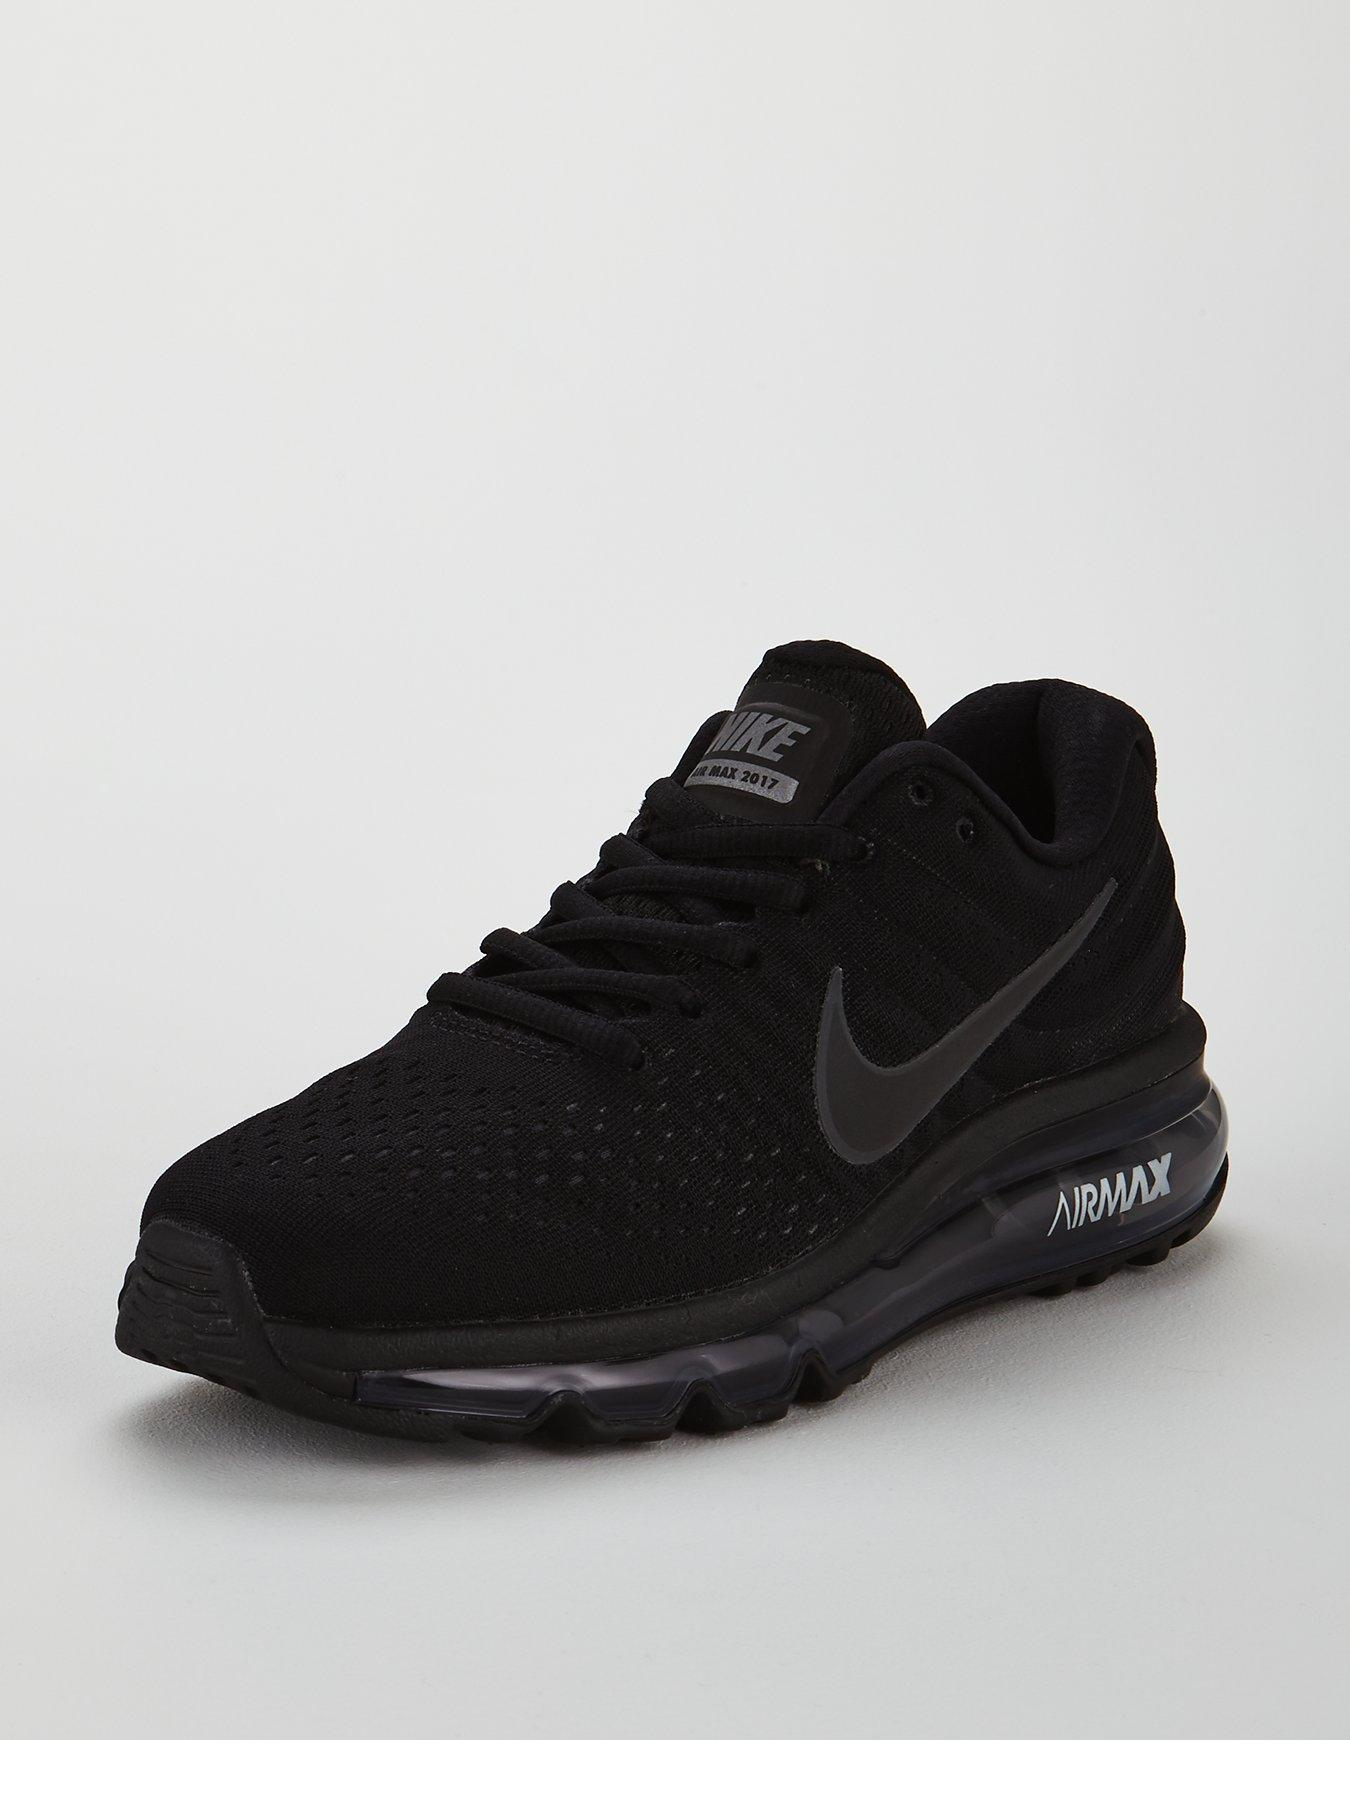 new style 7a96d 5babd release date nike air max 2017 junior trainer black aeec6 3ba03